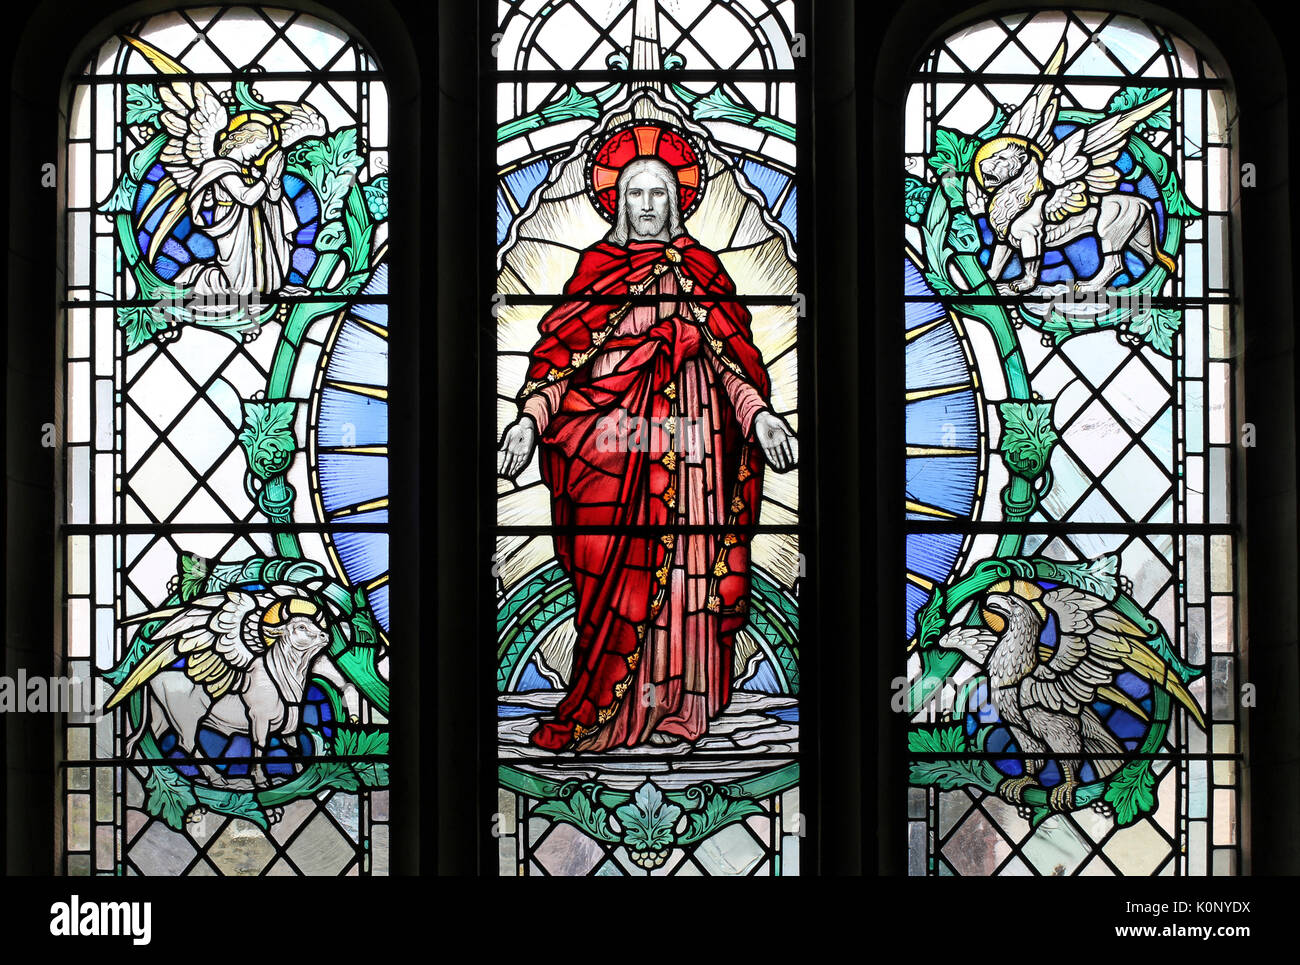 Stained Glass Window depicting Christ with Four Beasts of the Apocalypse - Stock Image